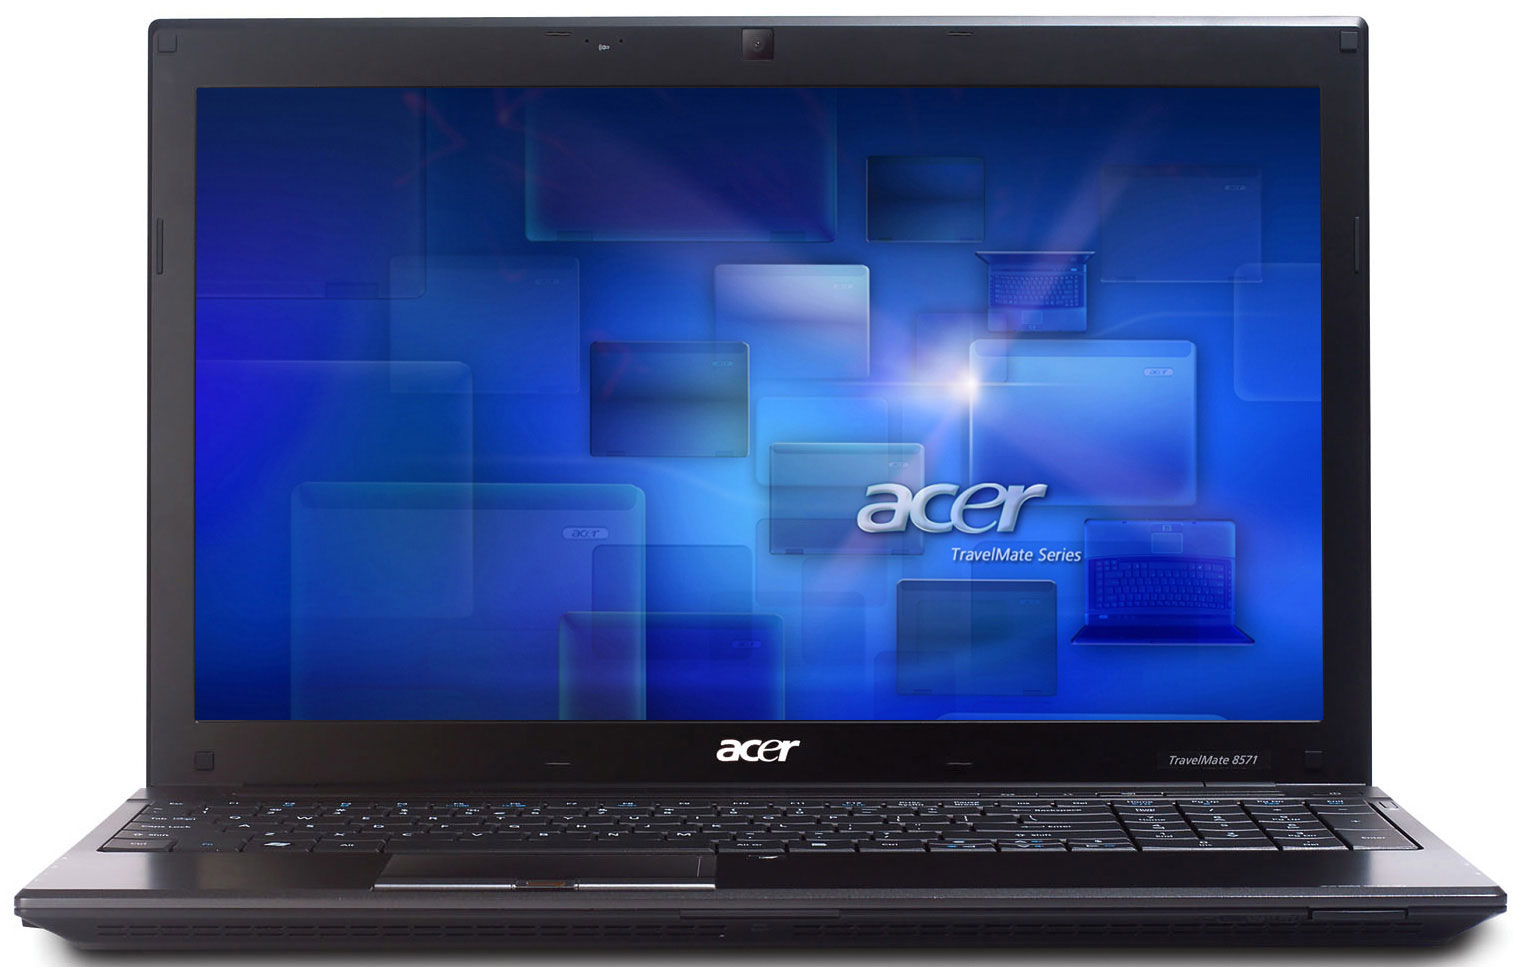 ACER TRAVELMATE 2420 AUDIO WINDOWS 7 DRIVER